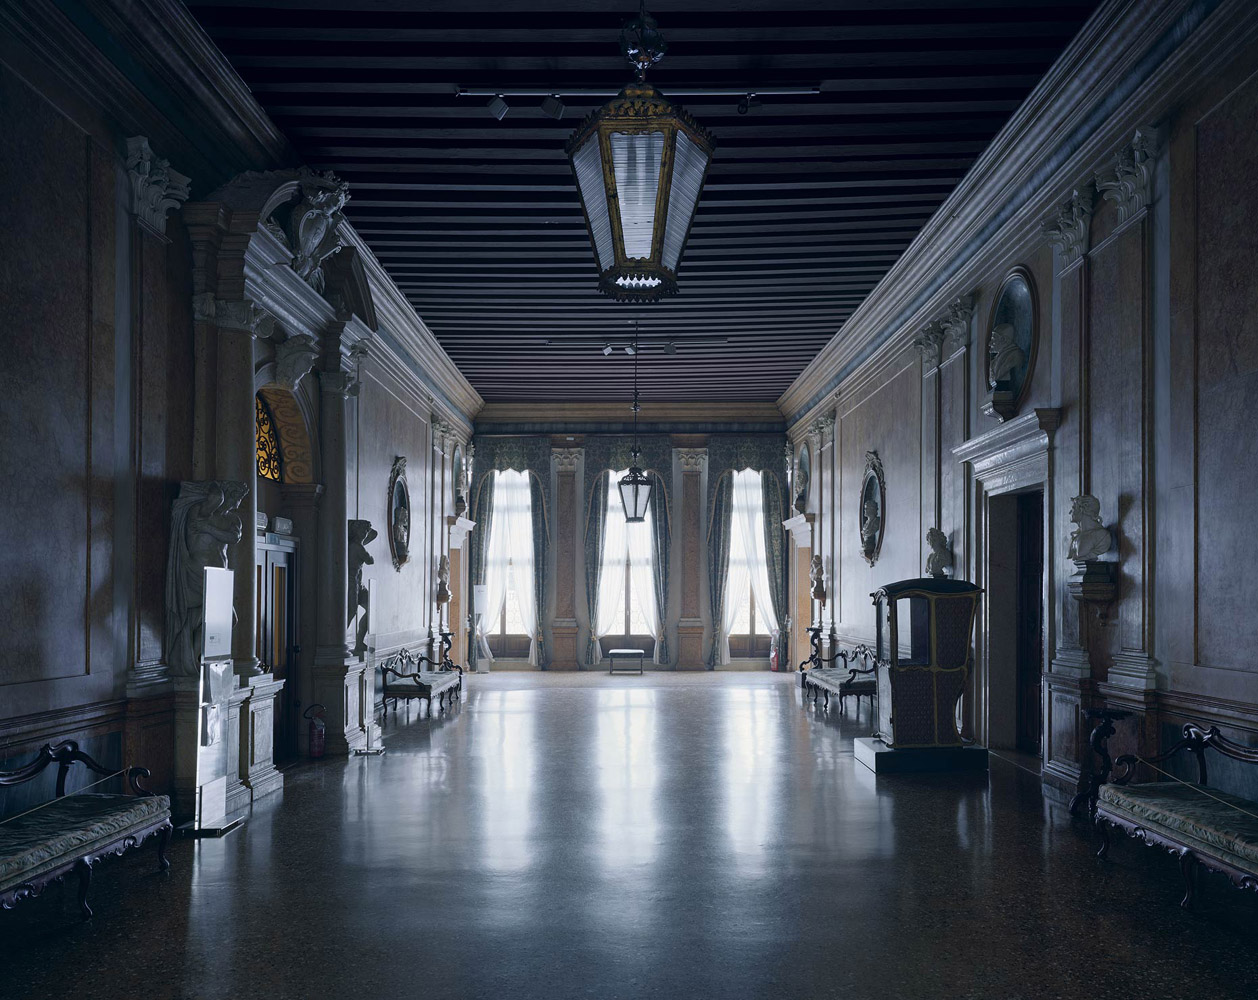 Ca' Rezzonico, Venice, Italy, 2012, by David Leventi. Fujicolor Crystal Archive print of an interior palace room, mounted to Dibond.